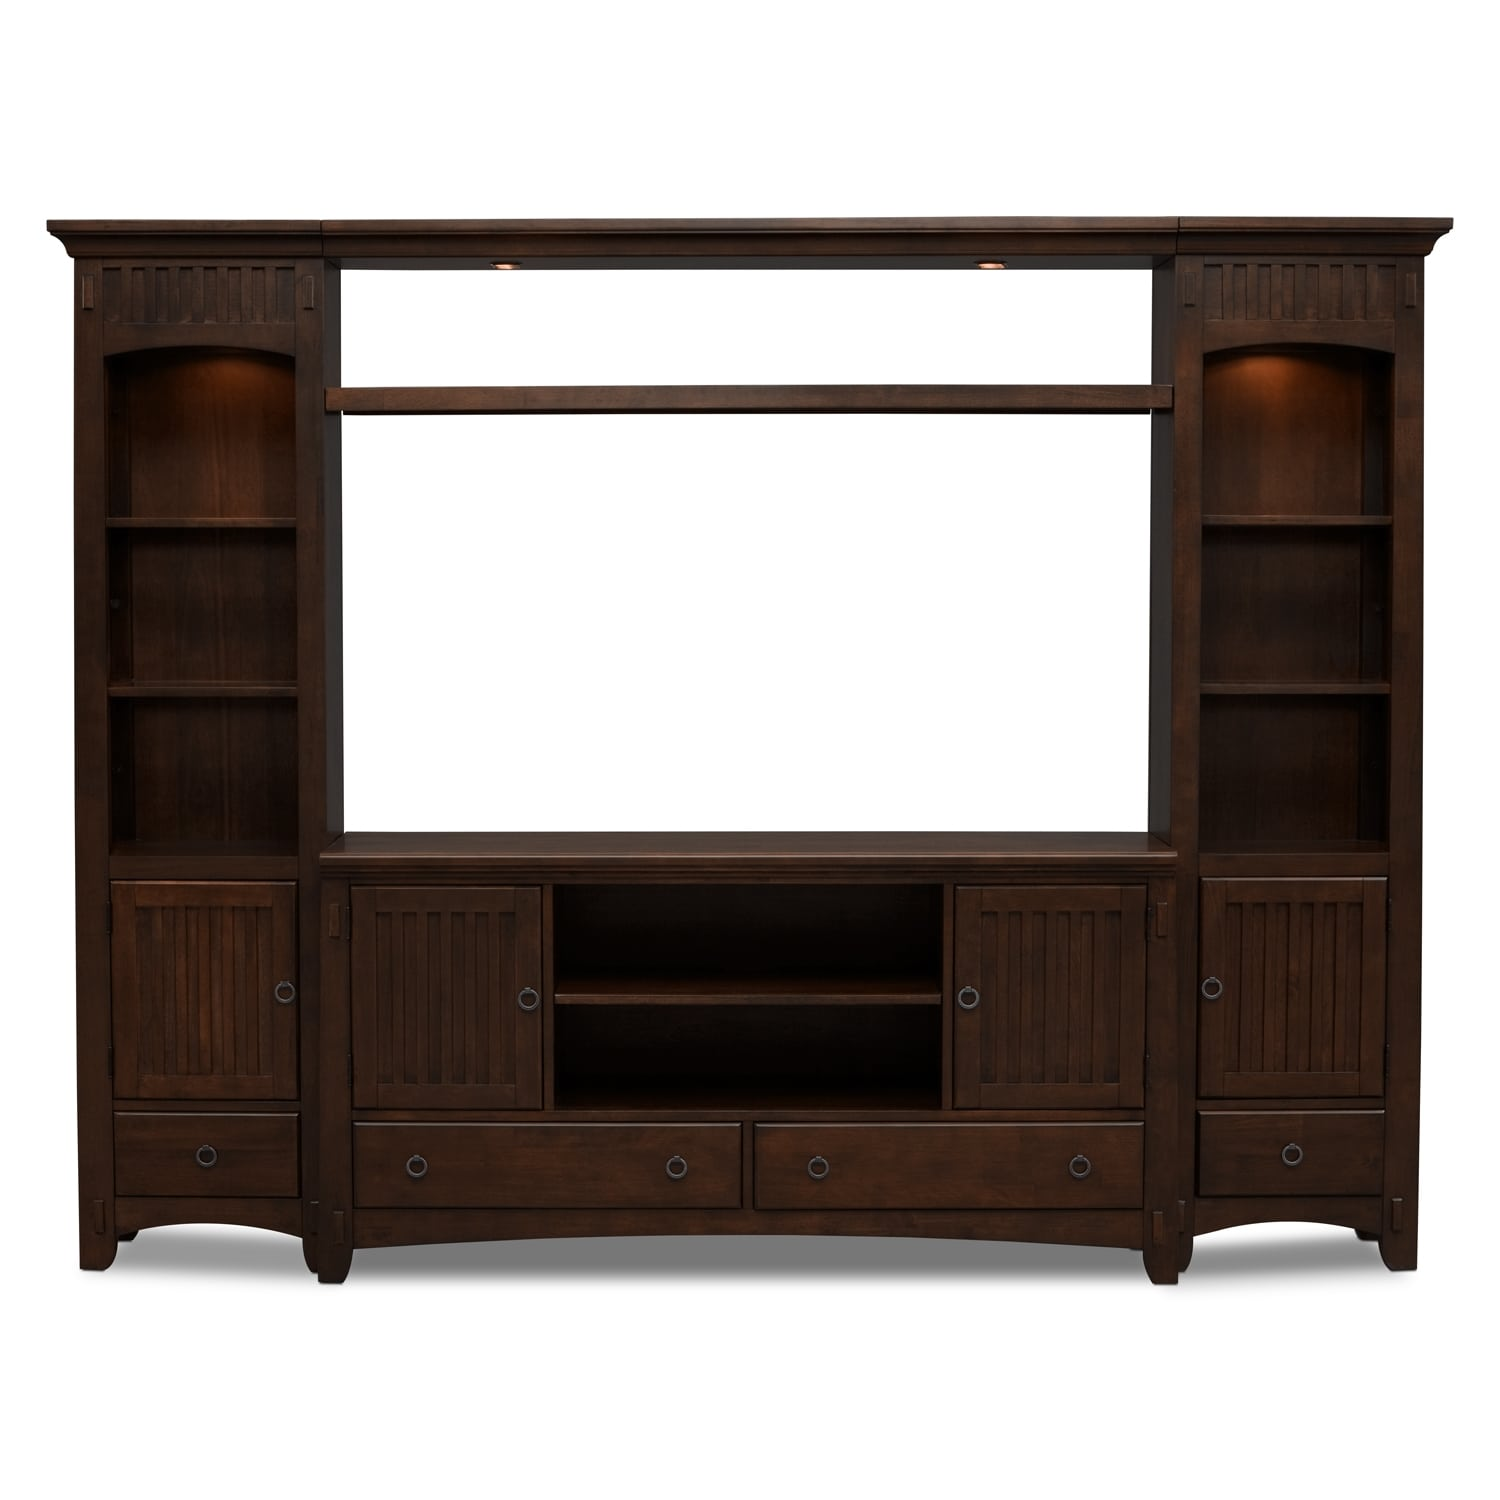 Arts crafts 4 piece entertainment wall unit chocolate for Signature furniture